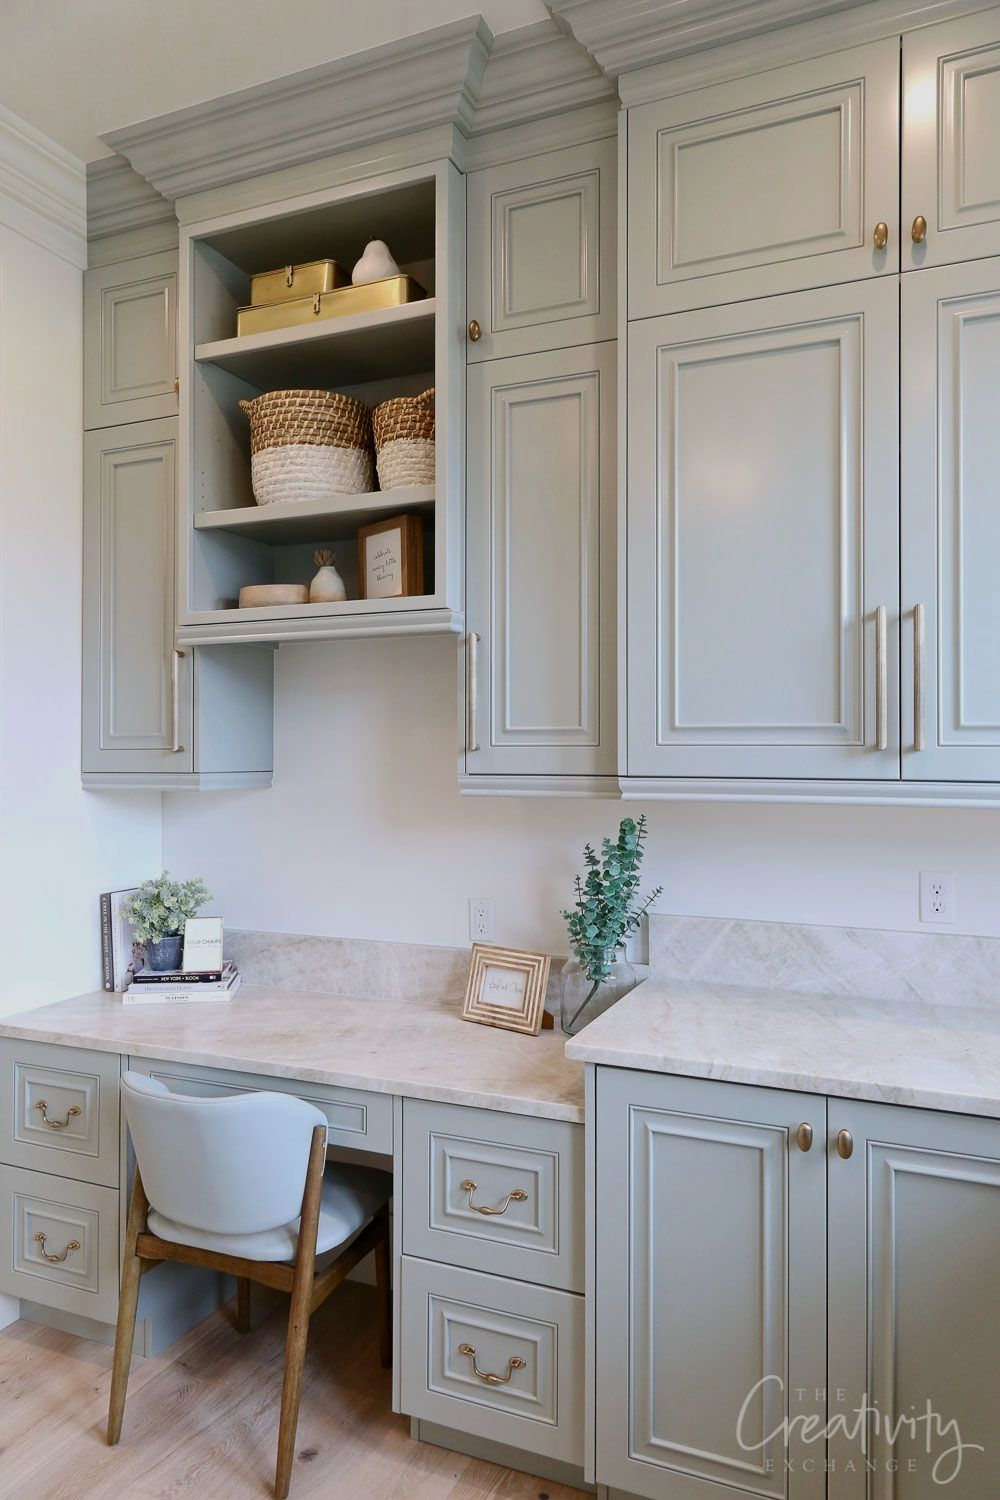 45 Lovely Kitchen Design Suggestions in 2020